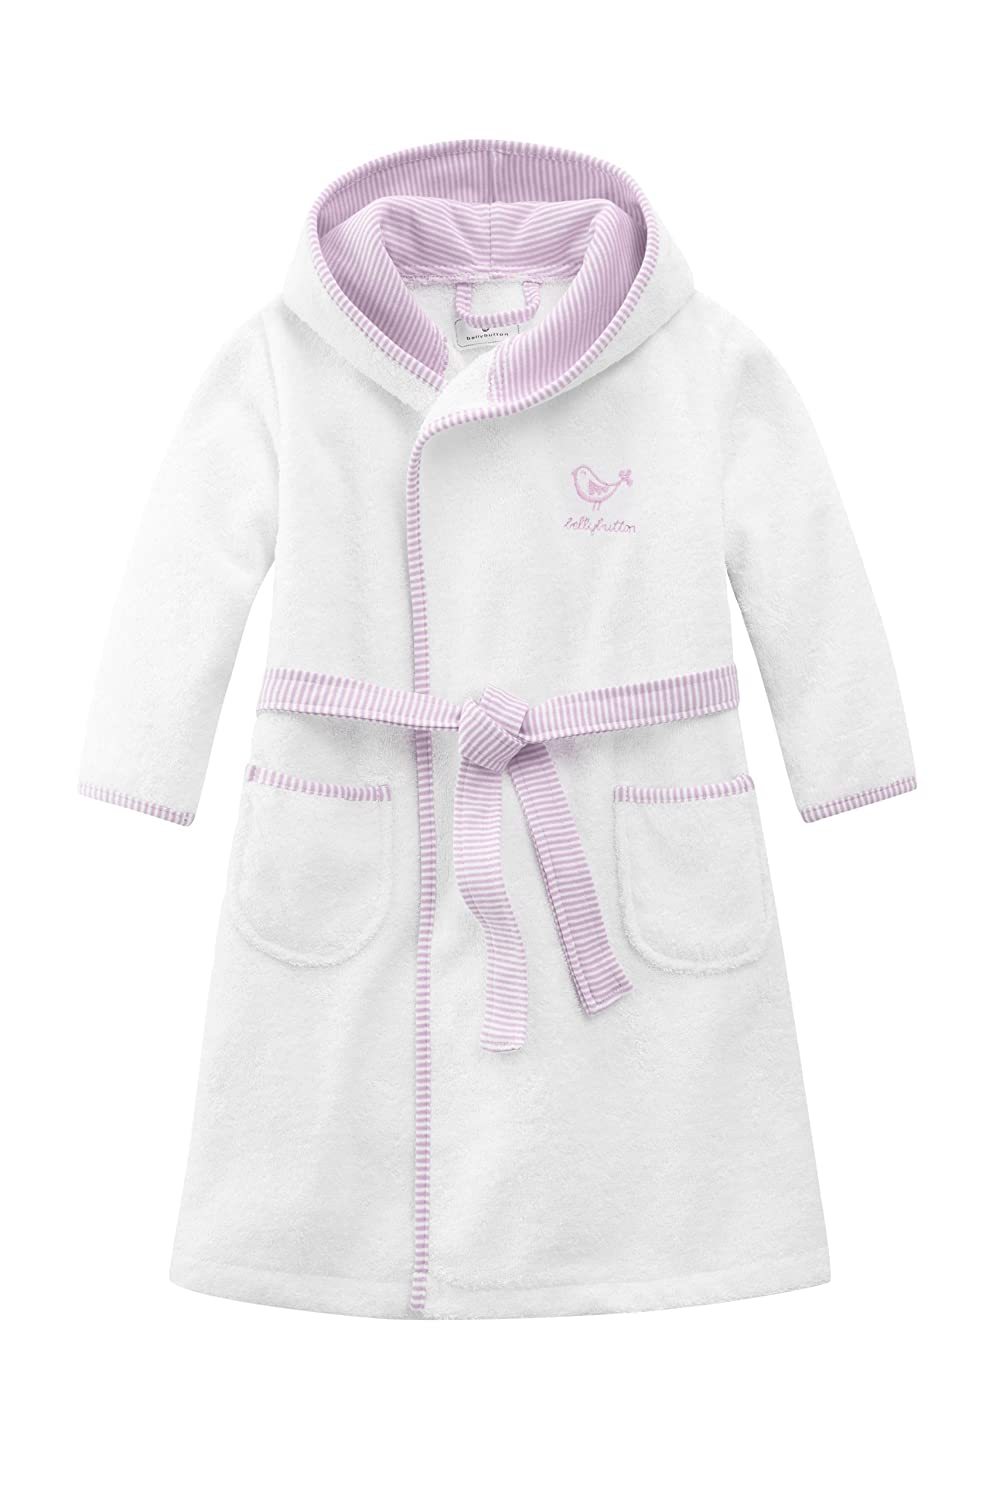 Bellybutton Kids with Belt for Kids Bathrobe